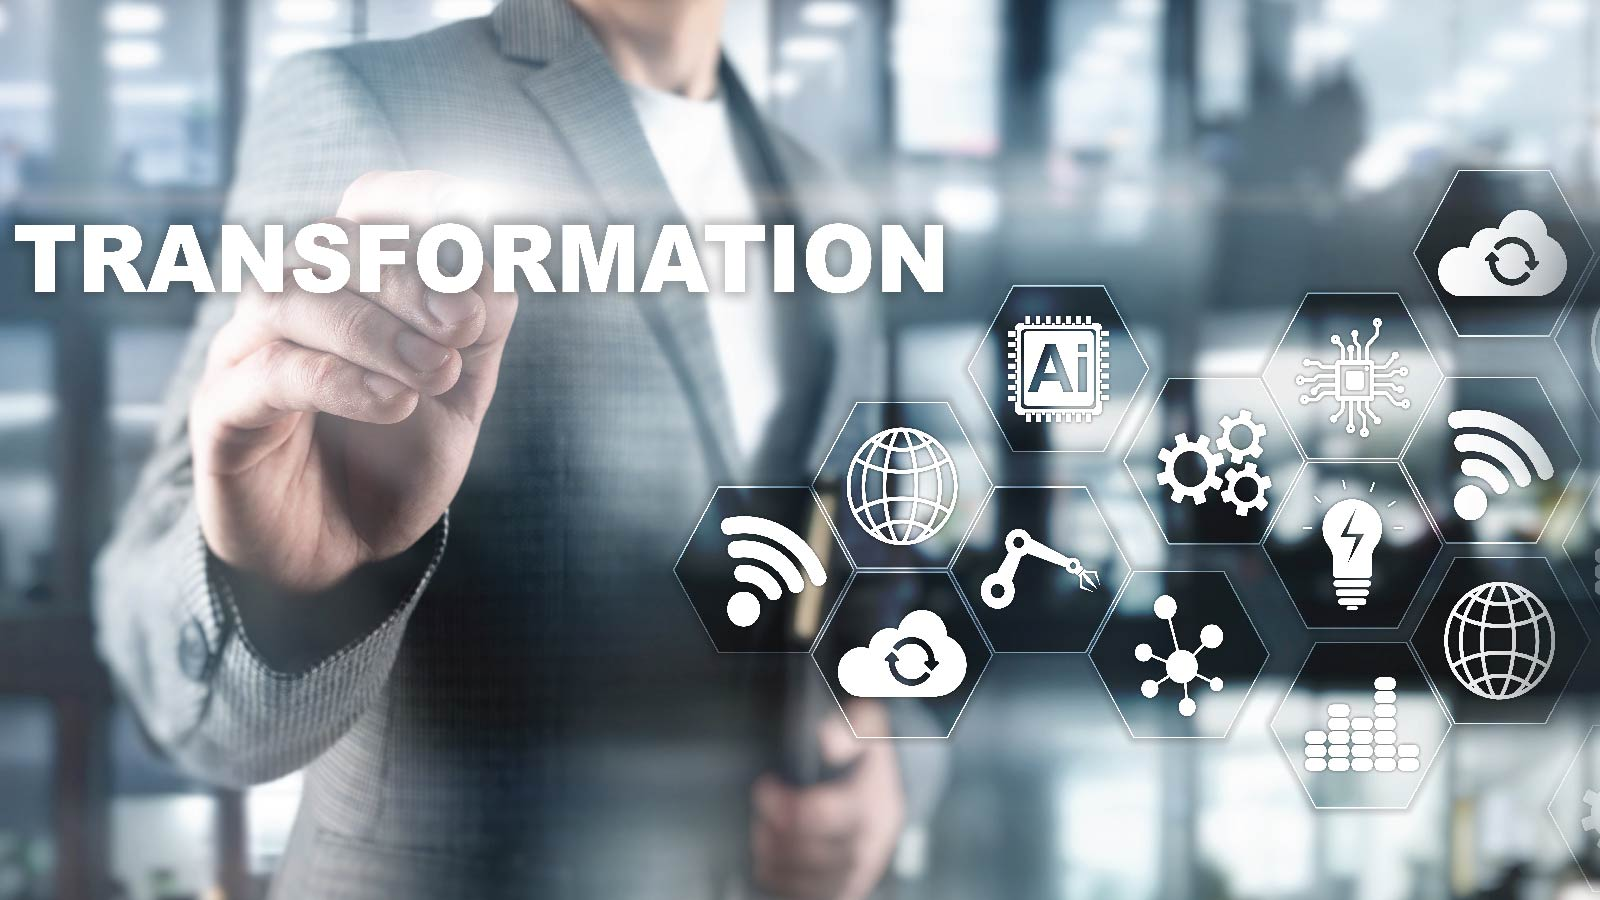 Digital Transformation - Warning Signs of Process Slow-down to Watch Out For